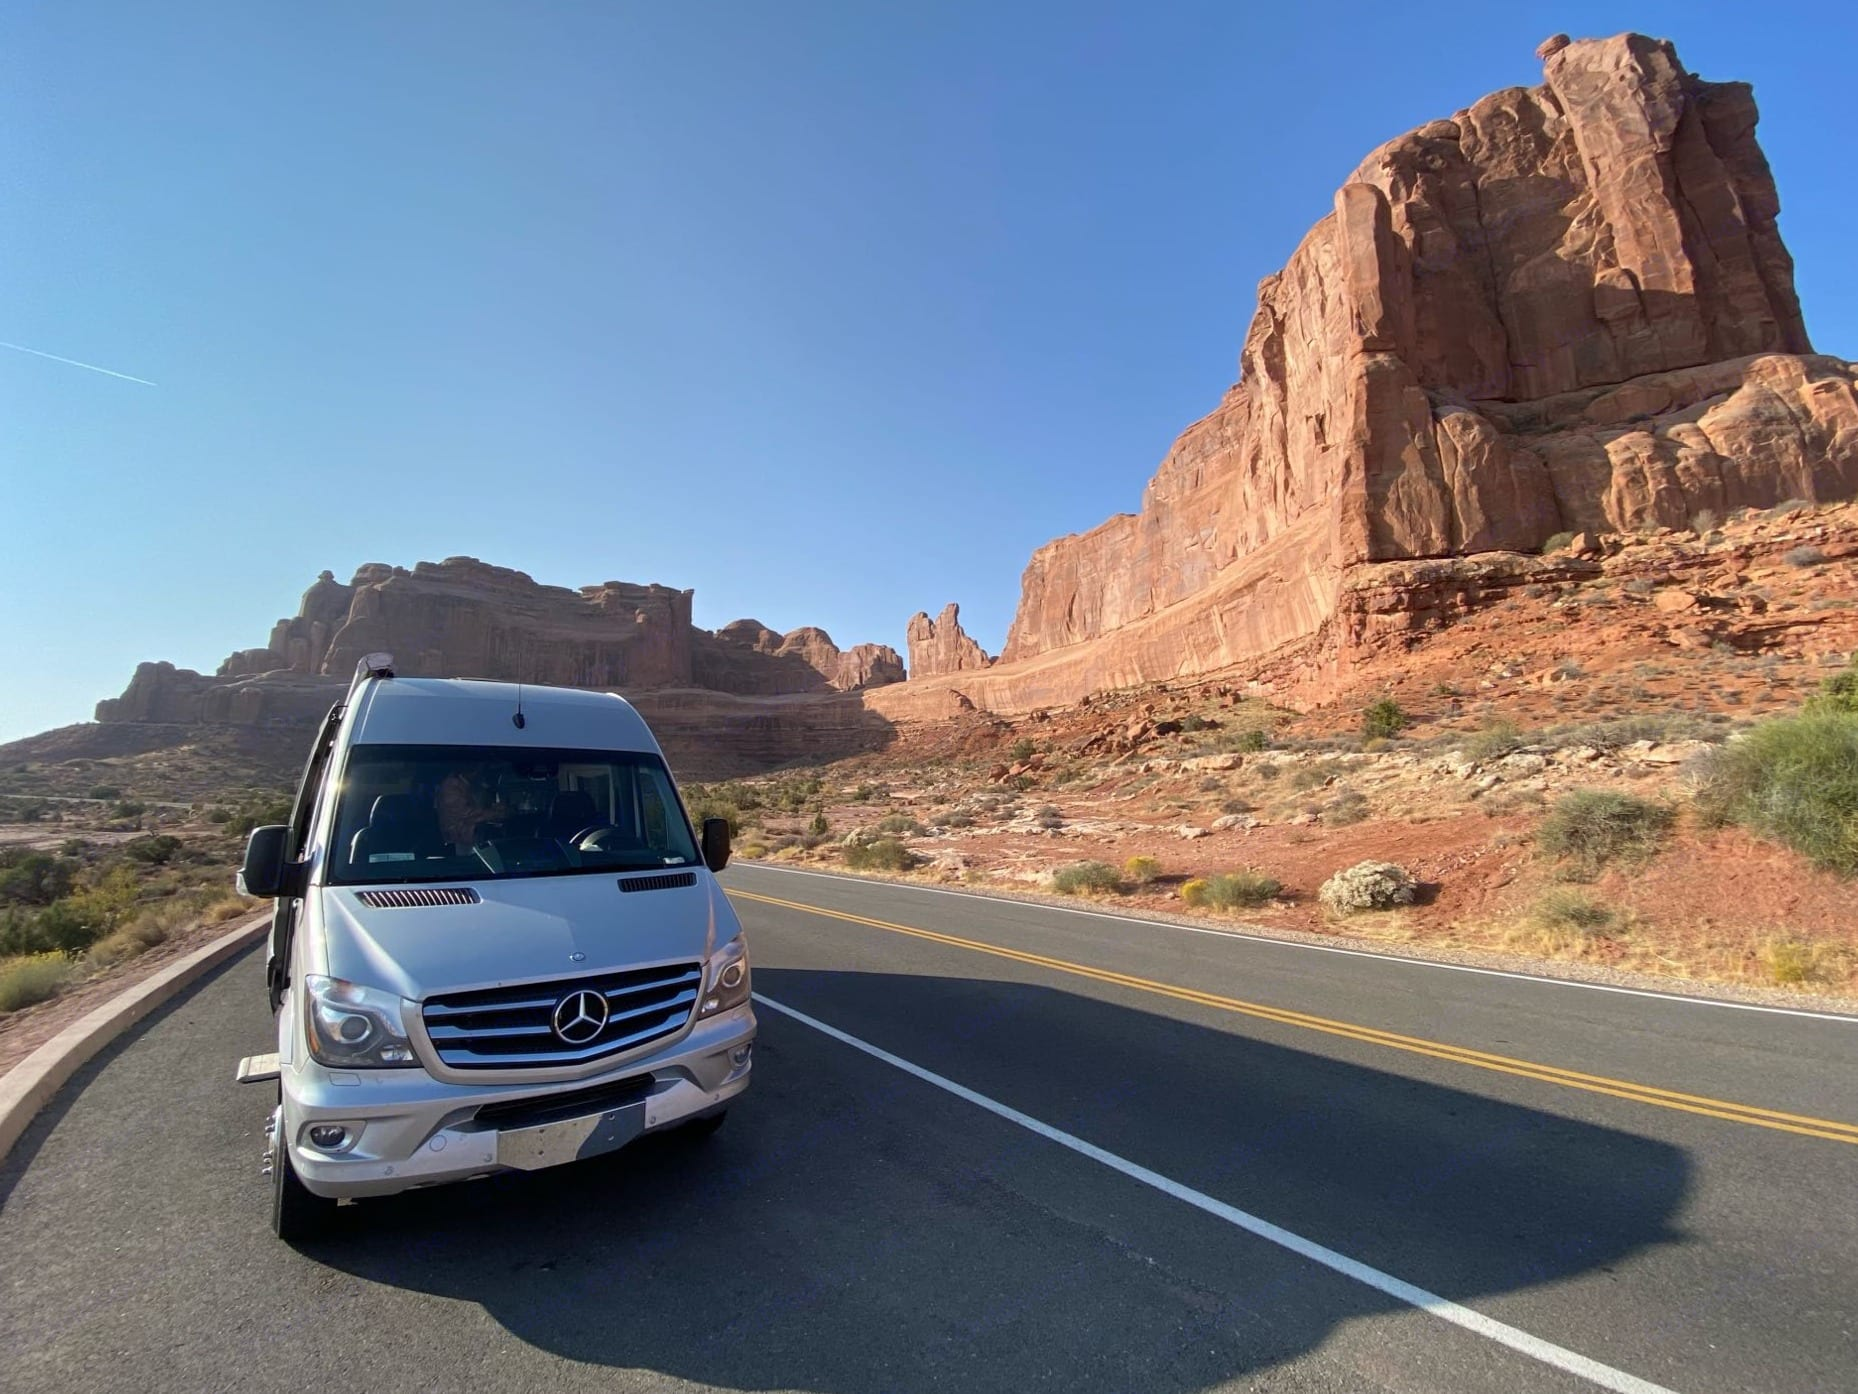 On the Road ... What a wonderful trip!. Airstream Interstate 19 2021